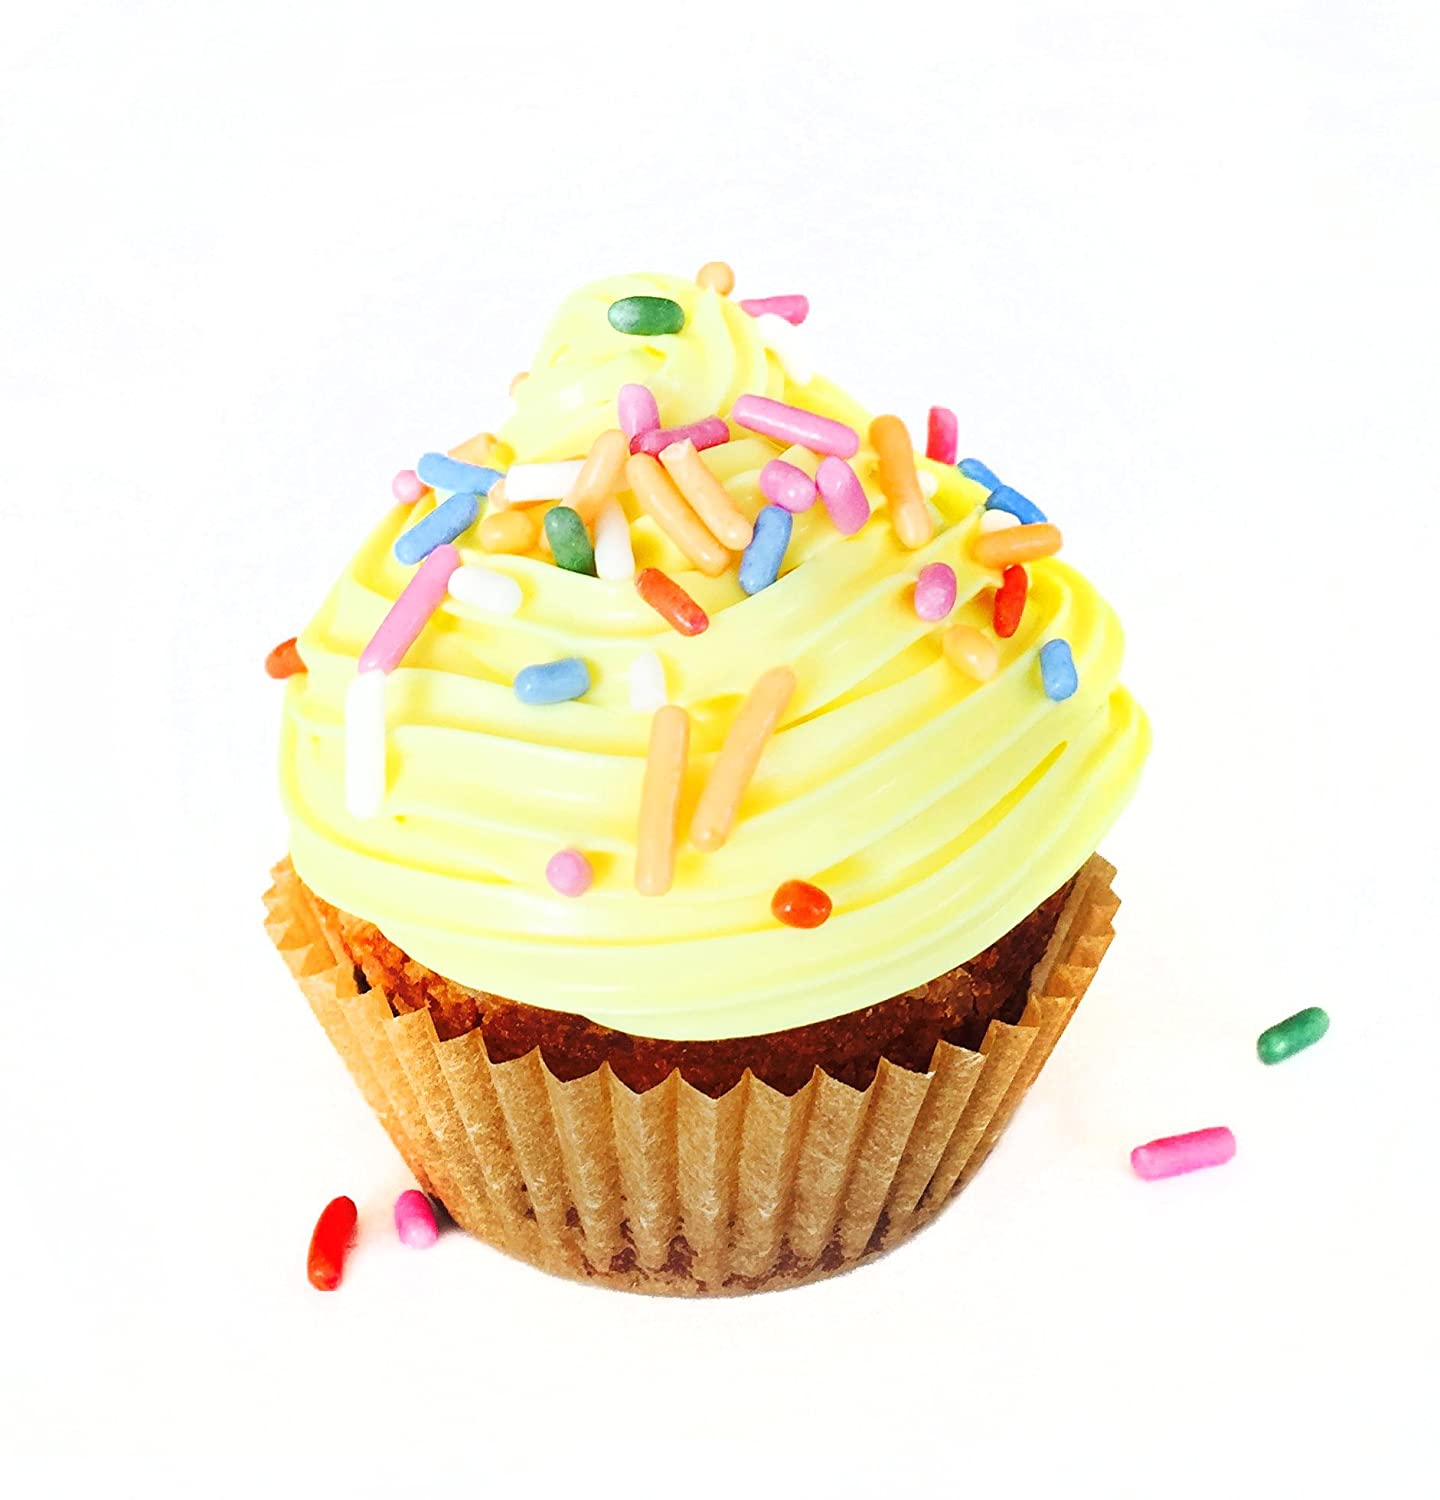 ColorKitchen Rainbow Sprinkles from Nature, 1.25 oz: Amazon.com ...